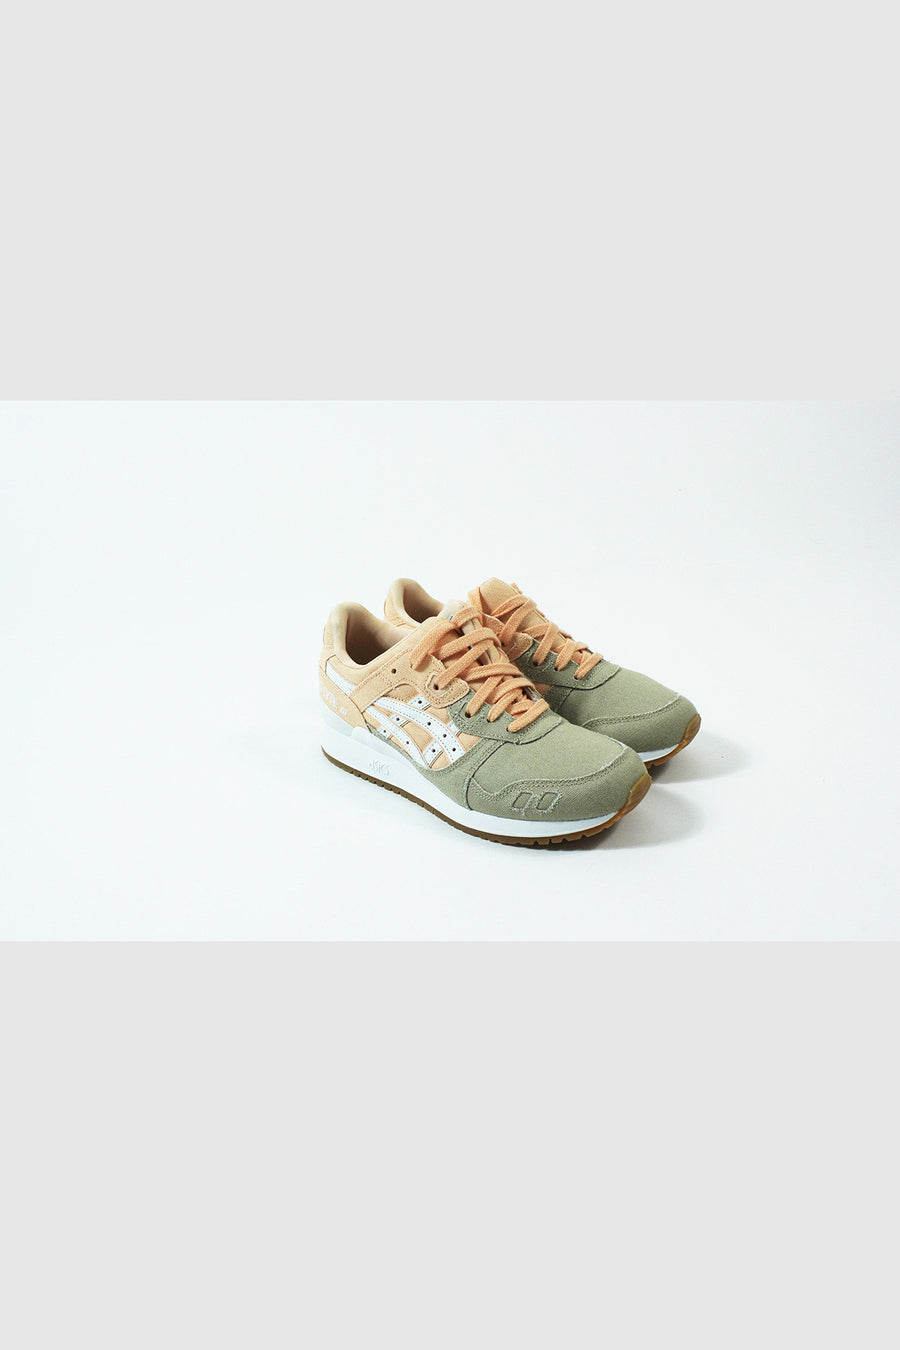 Asics - Gel Lyte III Women (Bleached Apricot /White)